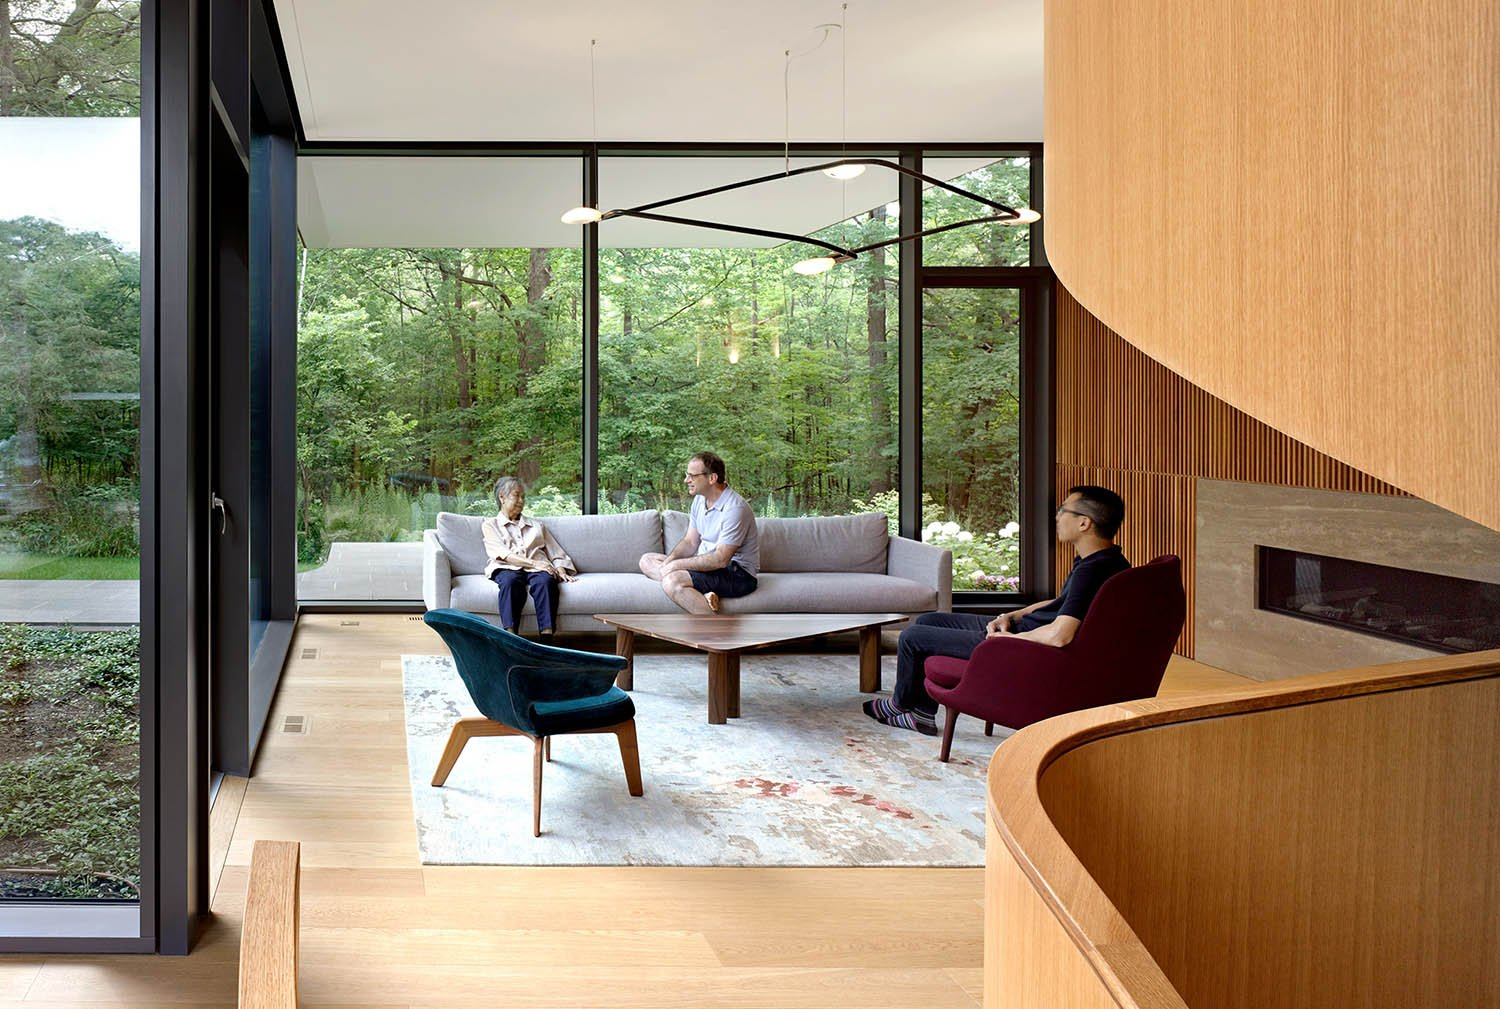 Intergenerational and shared family spaces. Ben Rahn/A-Frame Inc.